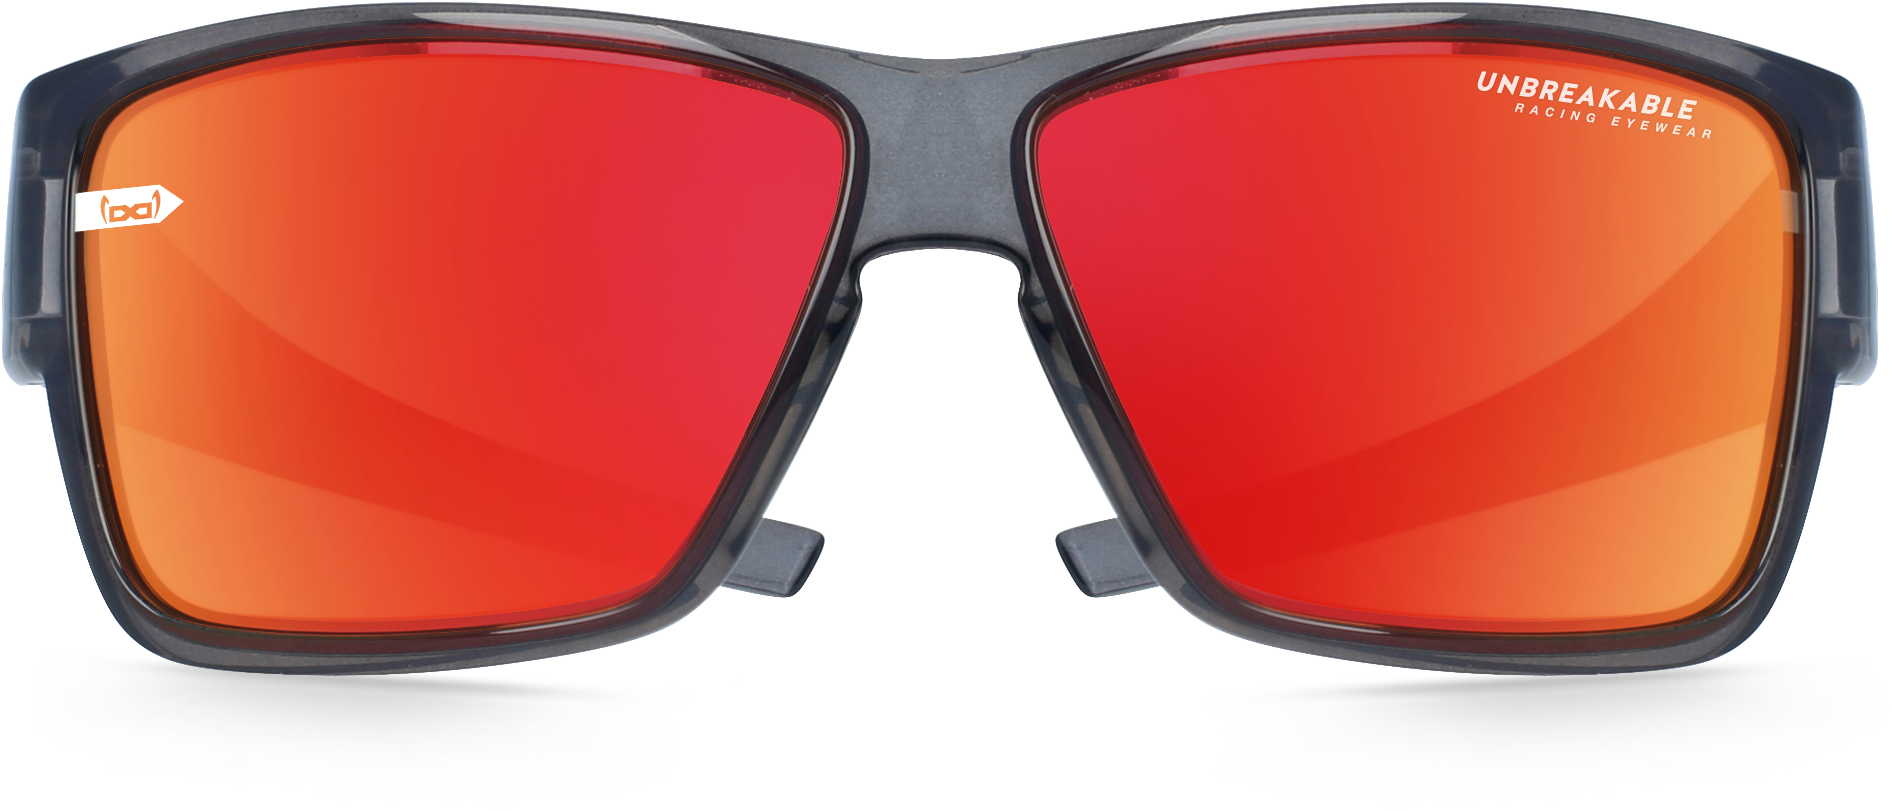 gloryfy unbreakable G14 Erzberg Rodeo XX5 sunglasses front view